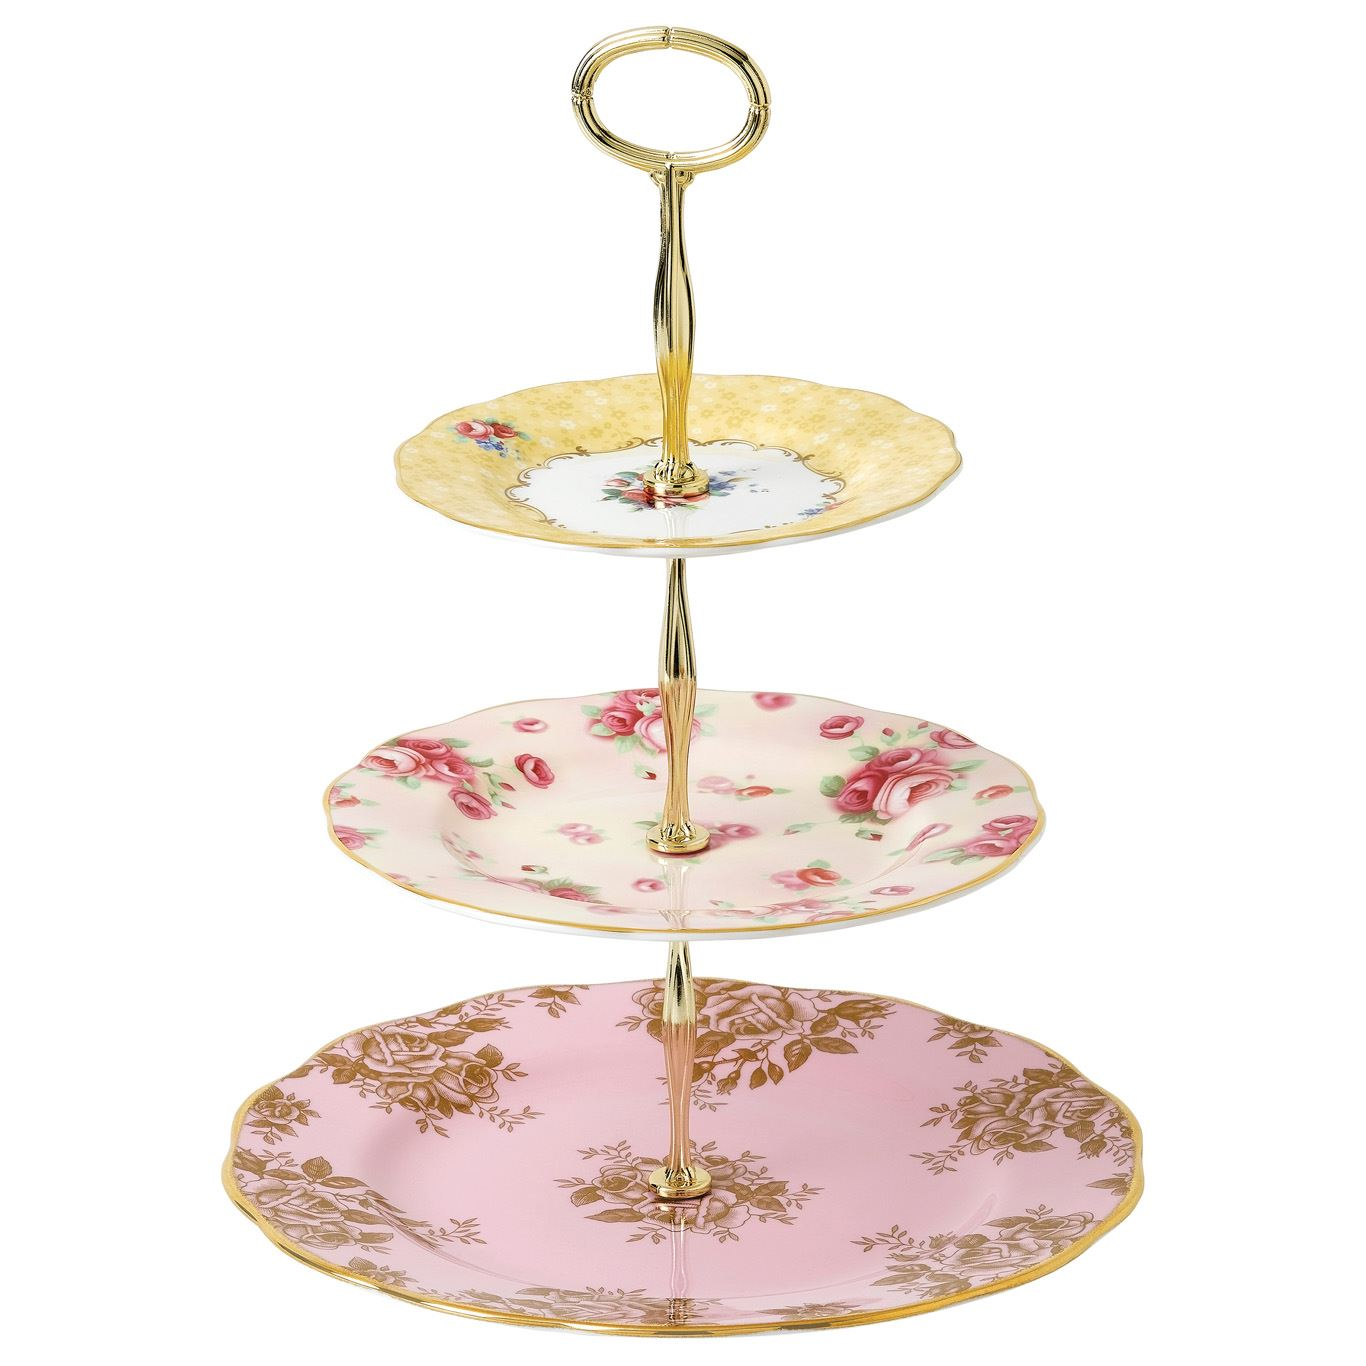 Royal Albert 100 Years of Royal Albert 3-Tier Cake Stand – Bouquet, Golden Roses and Rose Blush by Wedgwood | Floral Pattern | Gold Banding